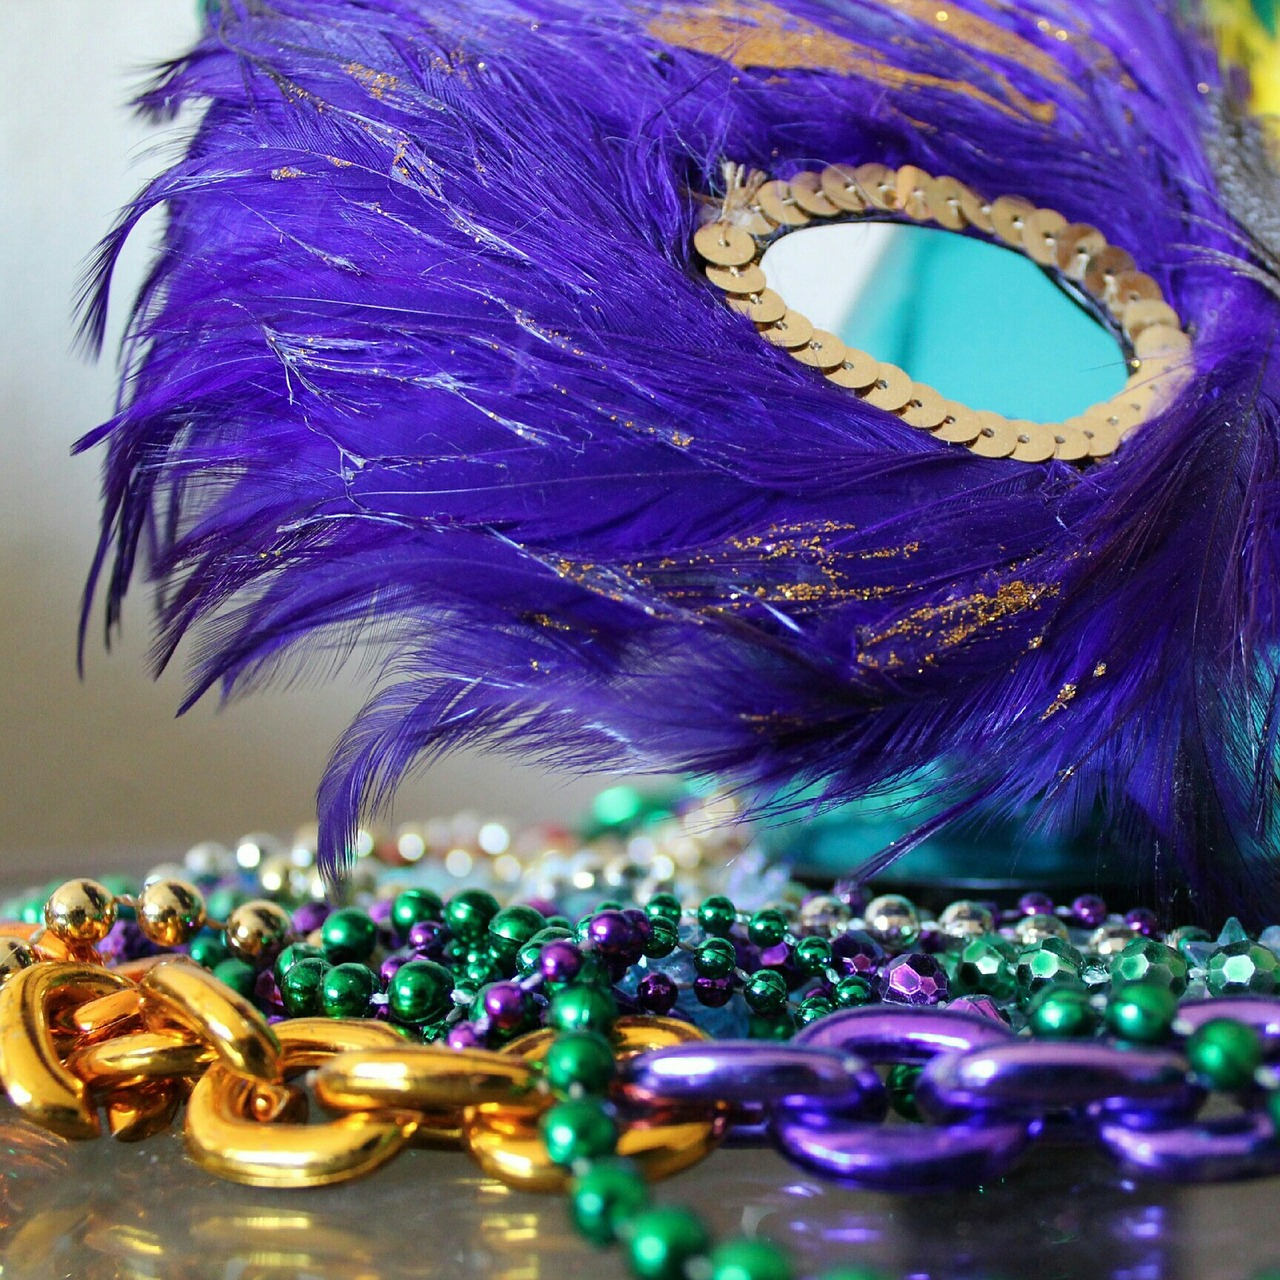 Funky Uptown Umbrella Brigade (Mardi Gras! Galveston) on Friday, January 29, 2016